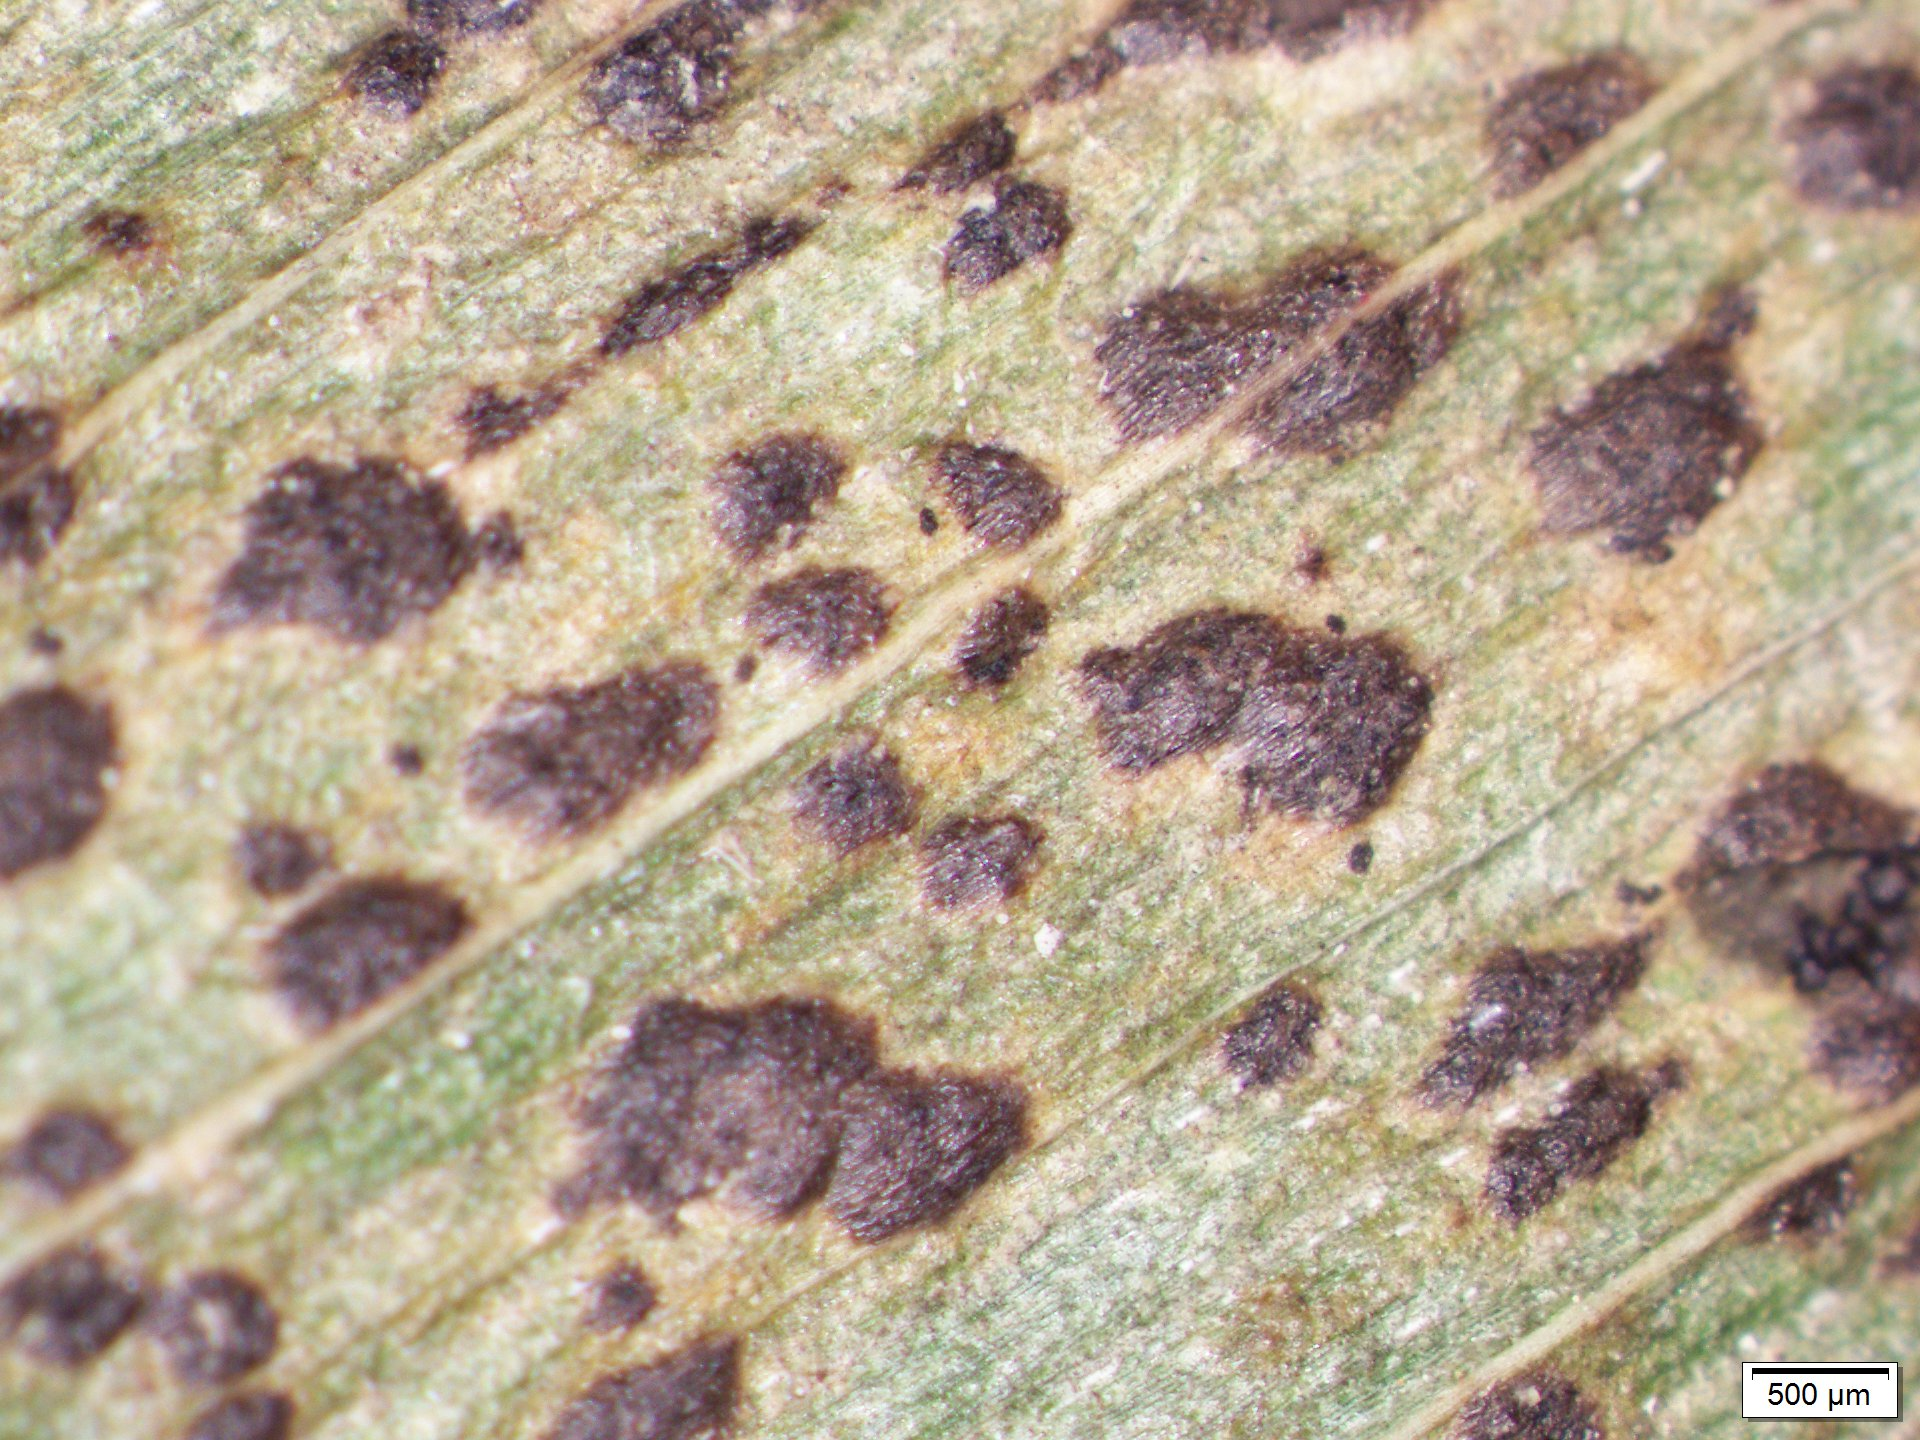 Fungal fruiting structures characteristic of tar spot.